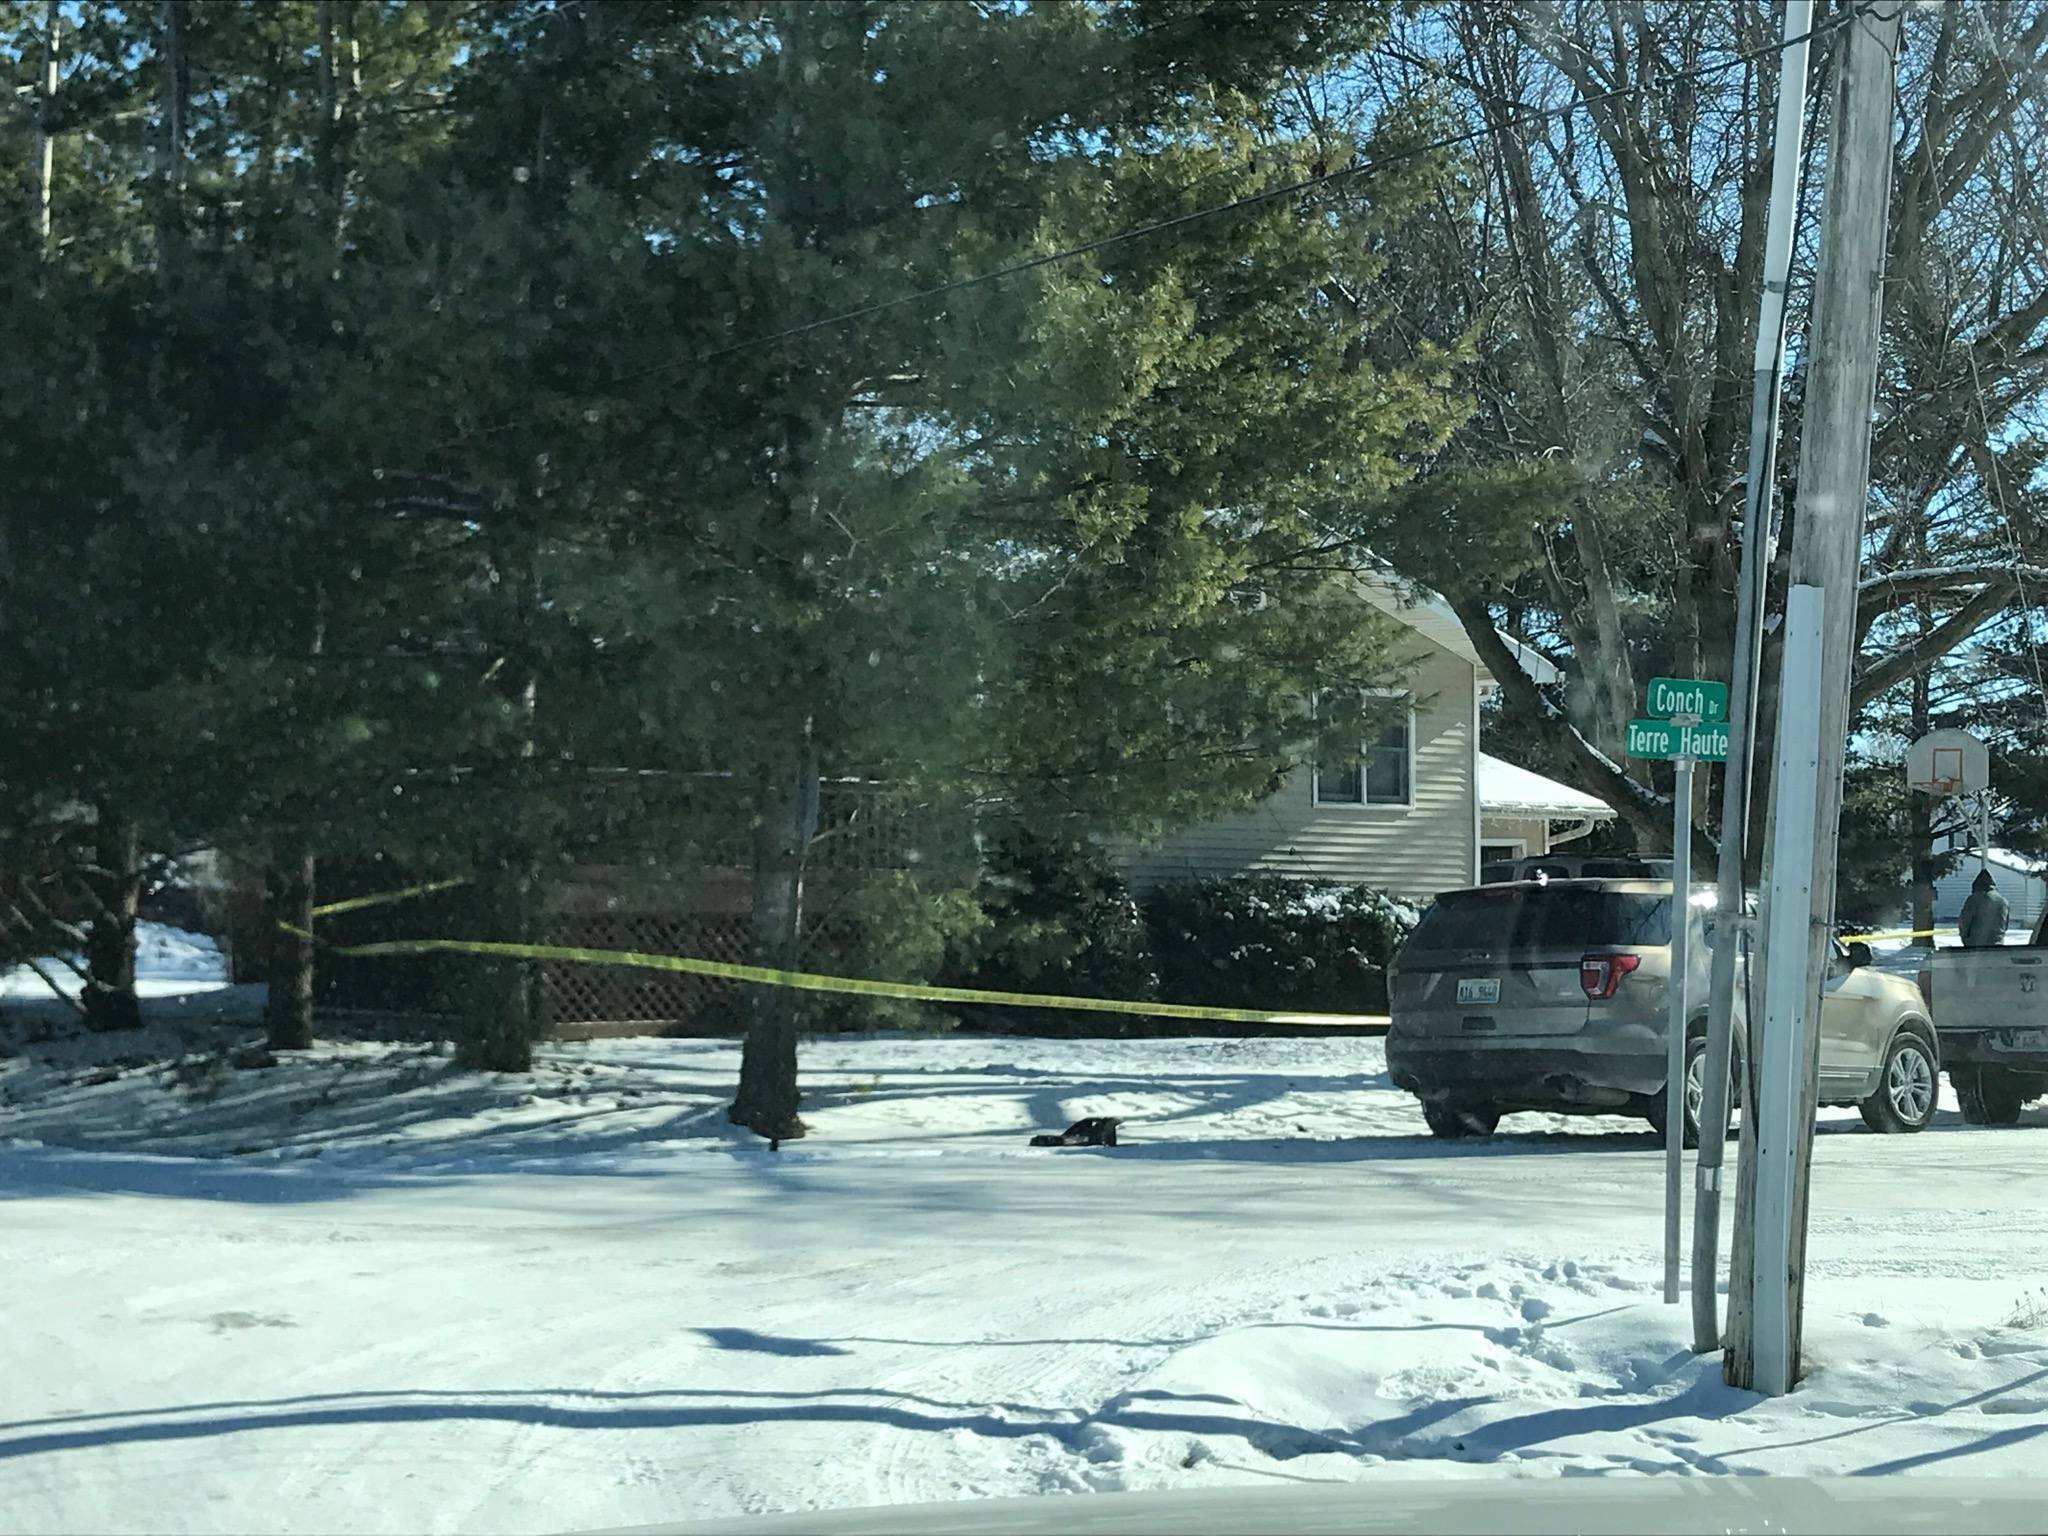 Crime scene tape surrounds a home in La Harpe, Illinois Monday morning as police investigate a shooting.